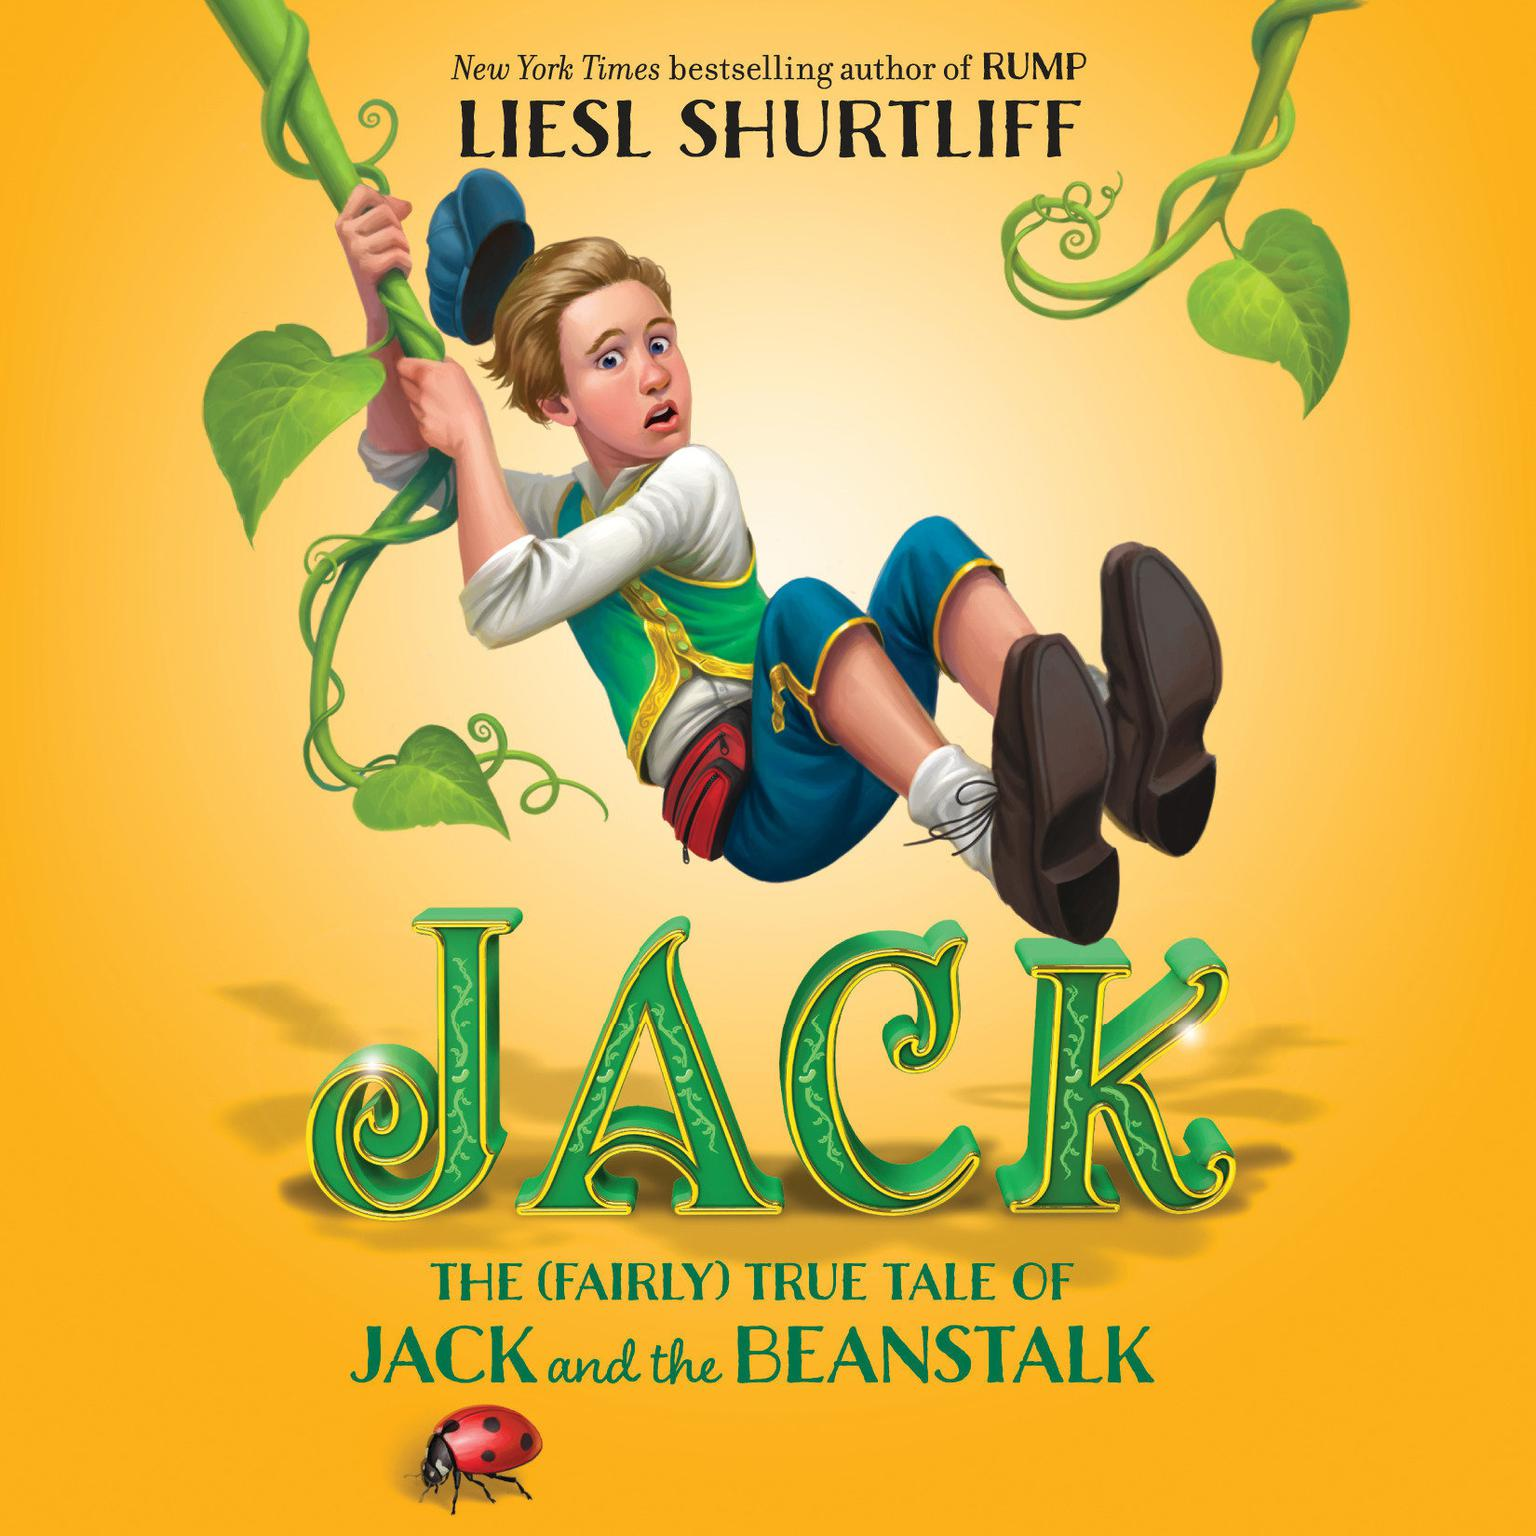 Jack The Fairly True Tale Of Jack And The Beanstalk